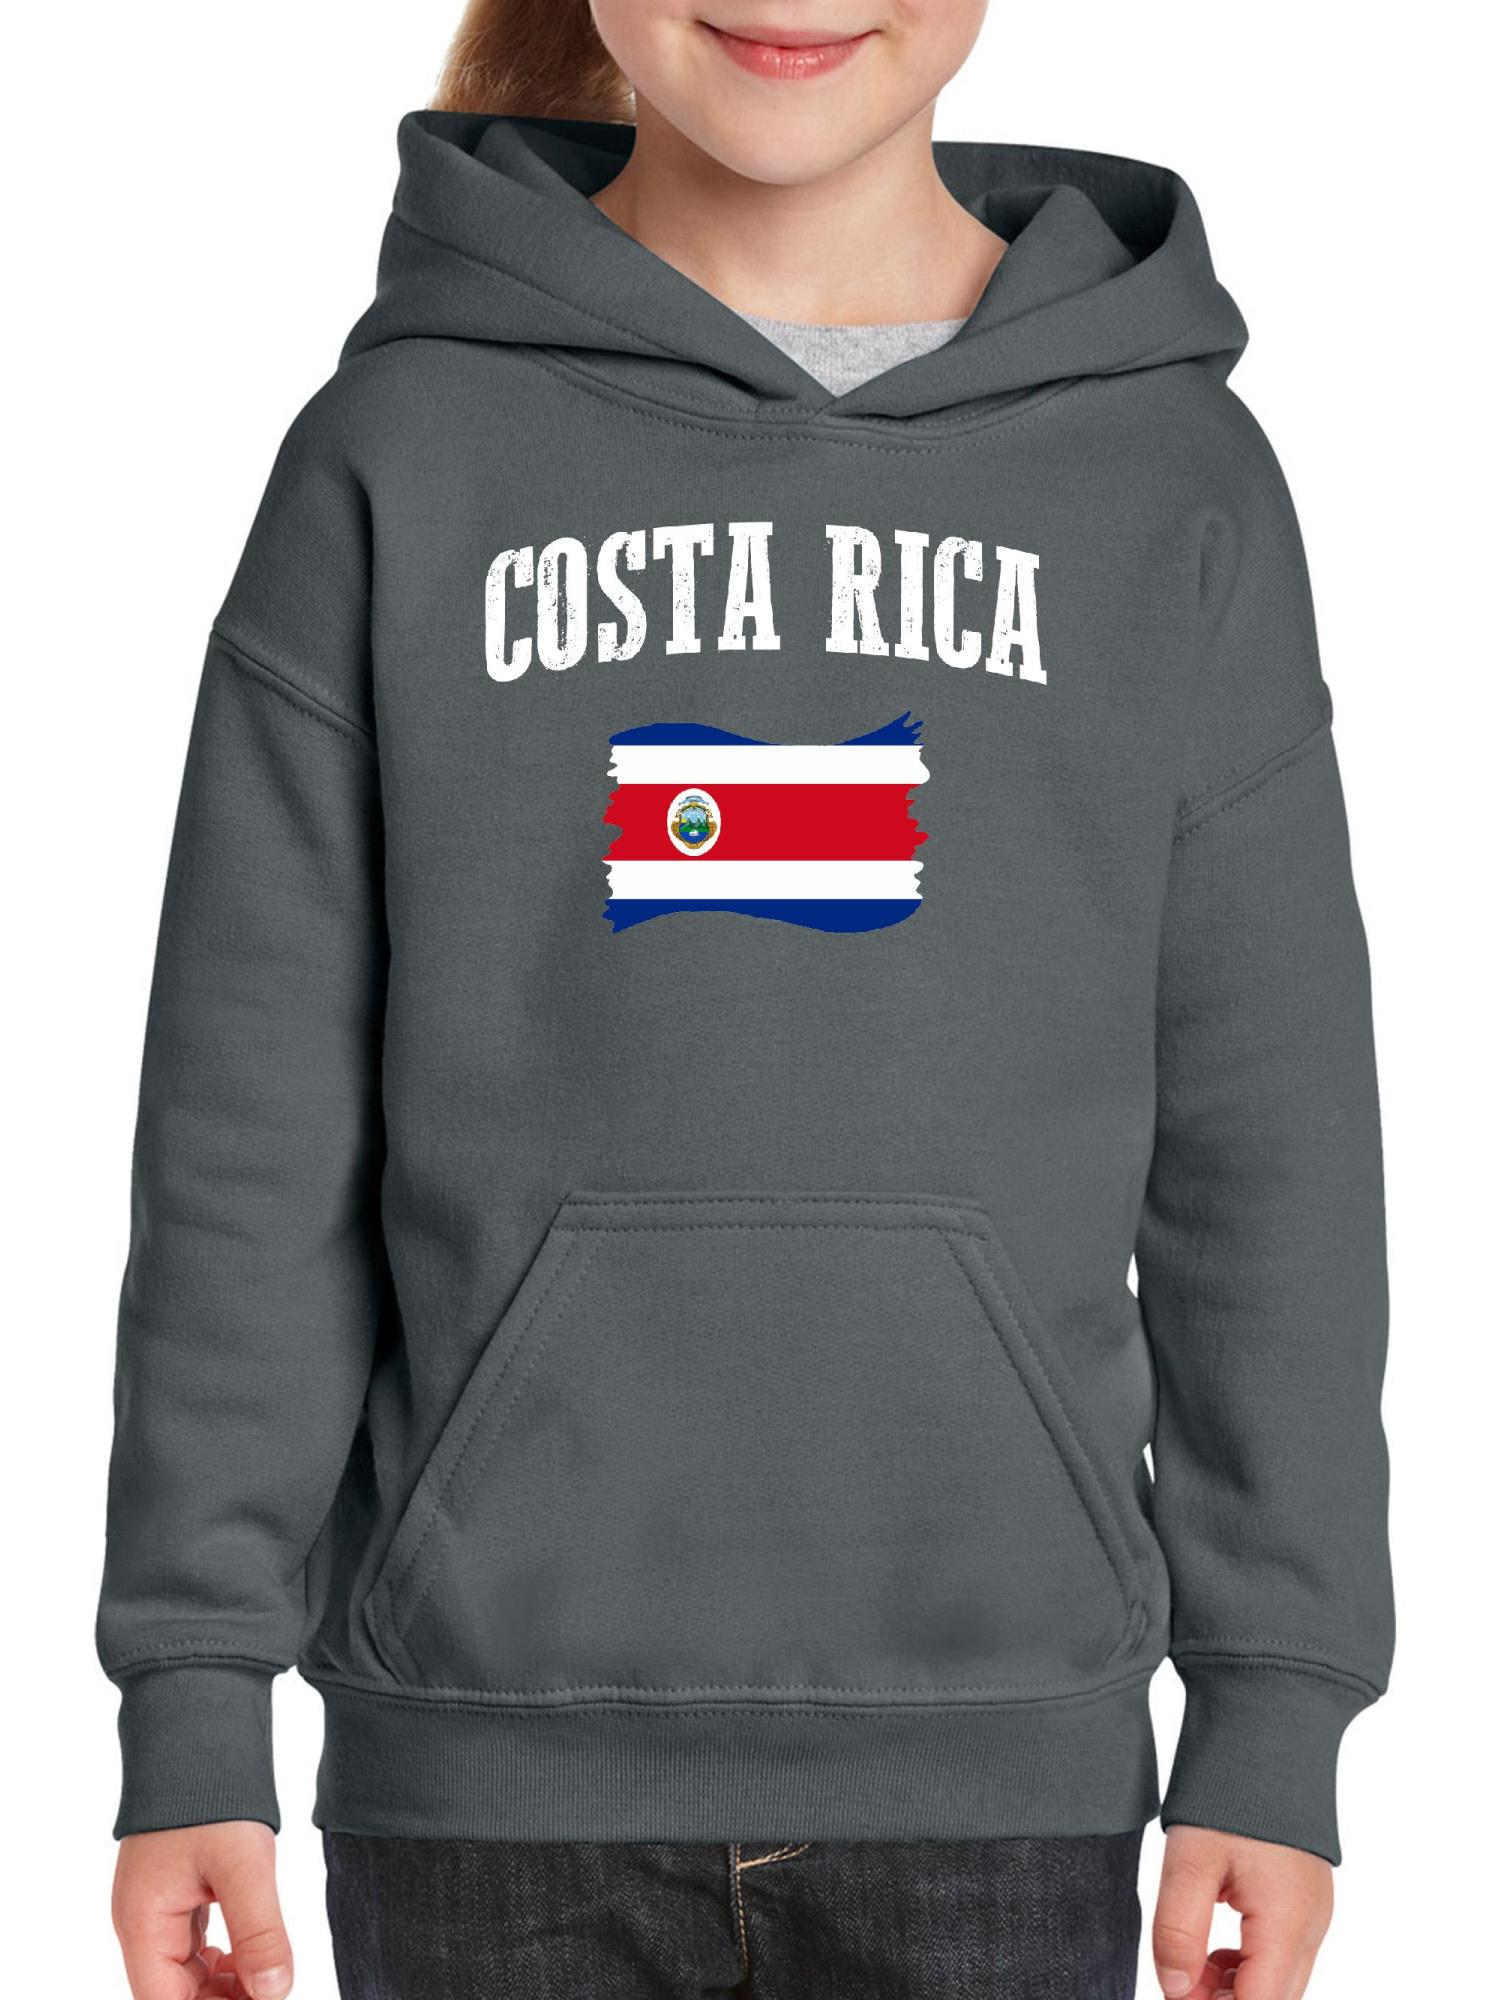 Mens Costa Rica Flag Dog Paw Hooded Fleece Winter Cotton Sports Pullover with Pocket for Men